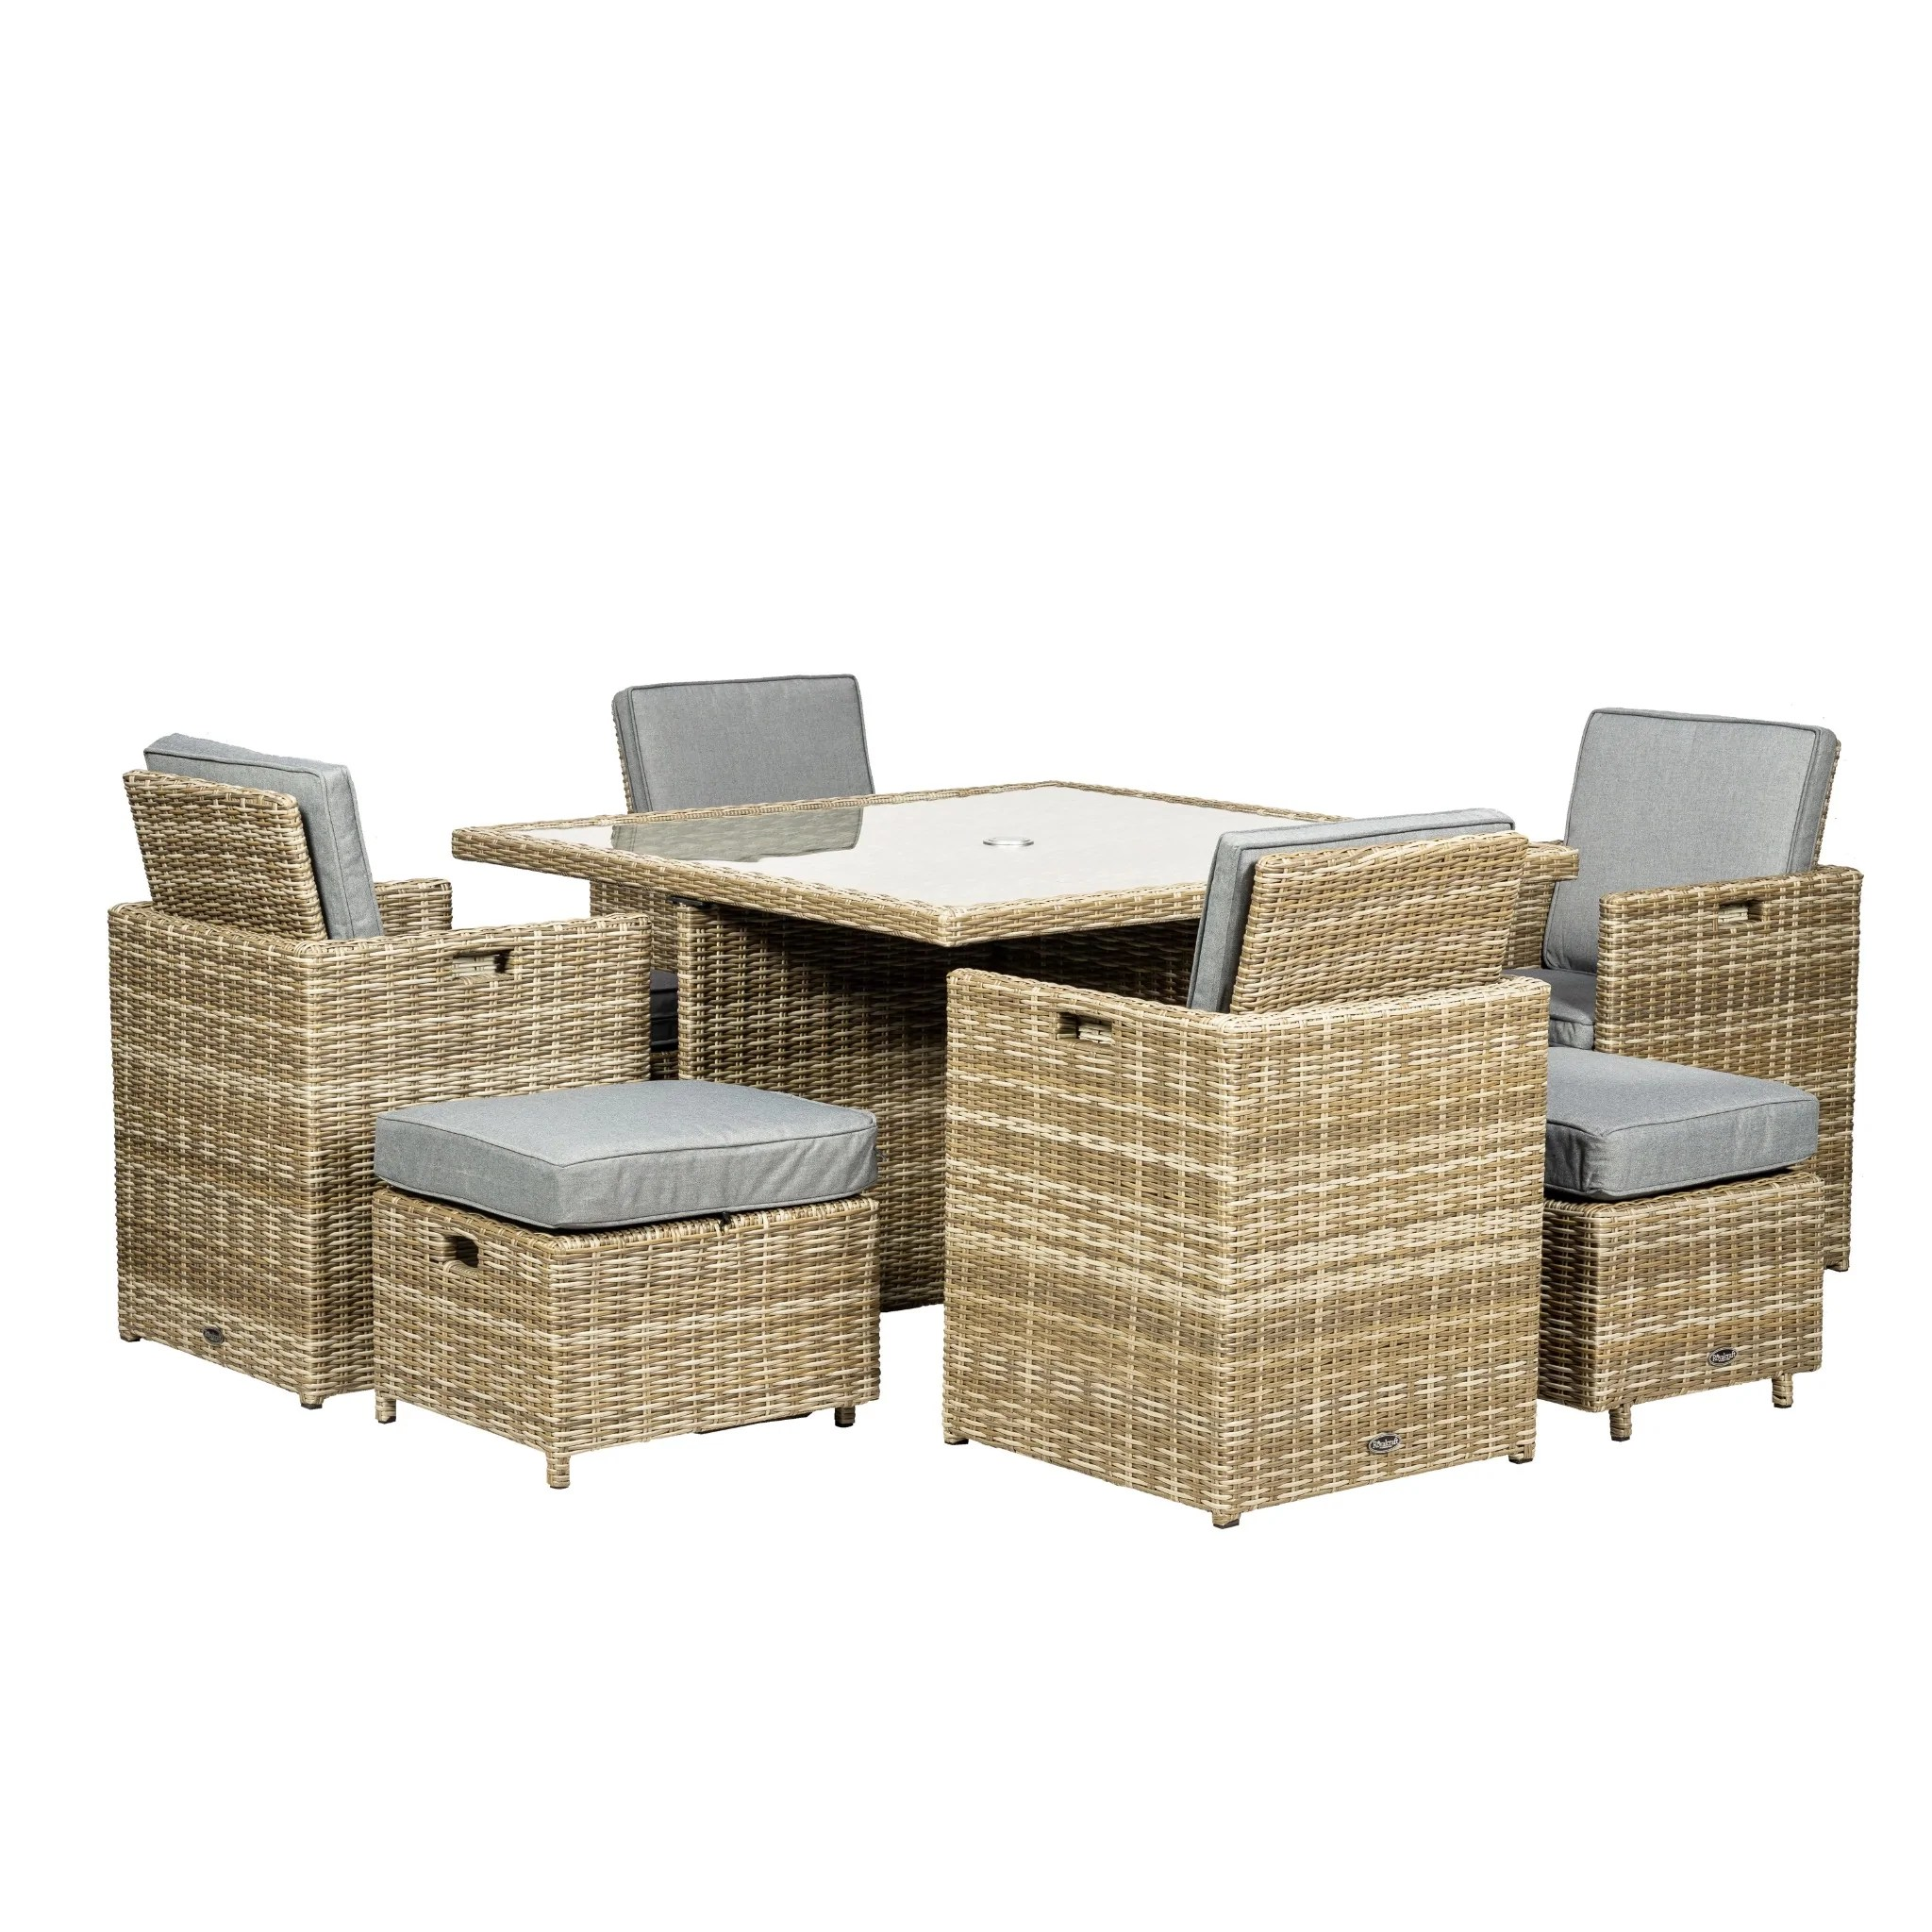 Wentworth 8 Seater Cube Set Ncf Living